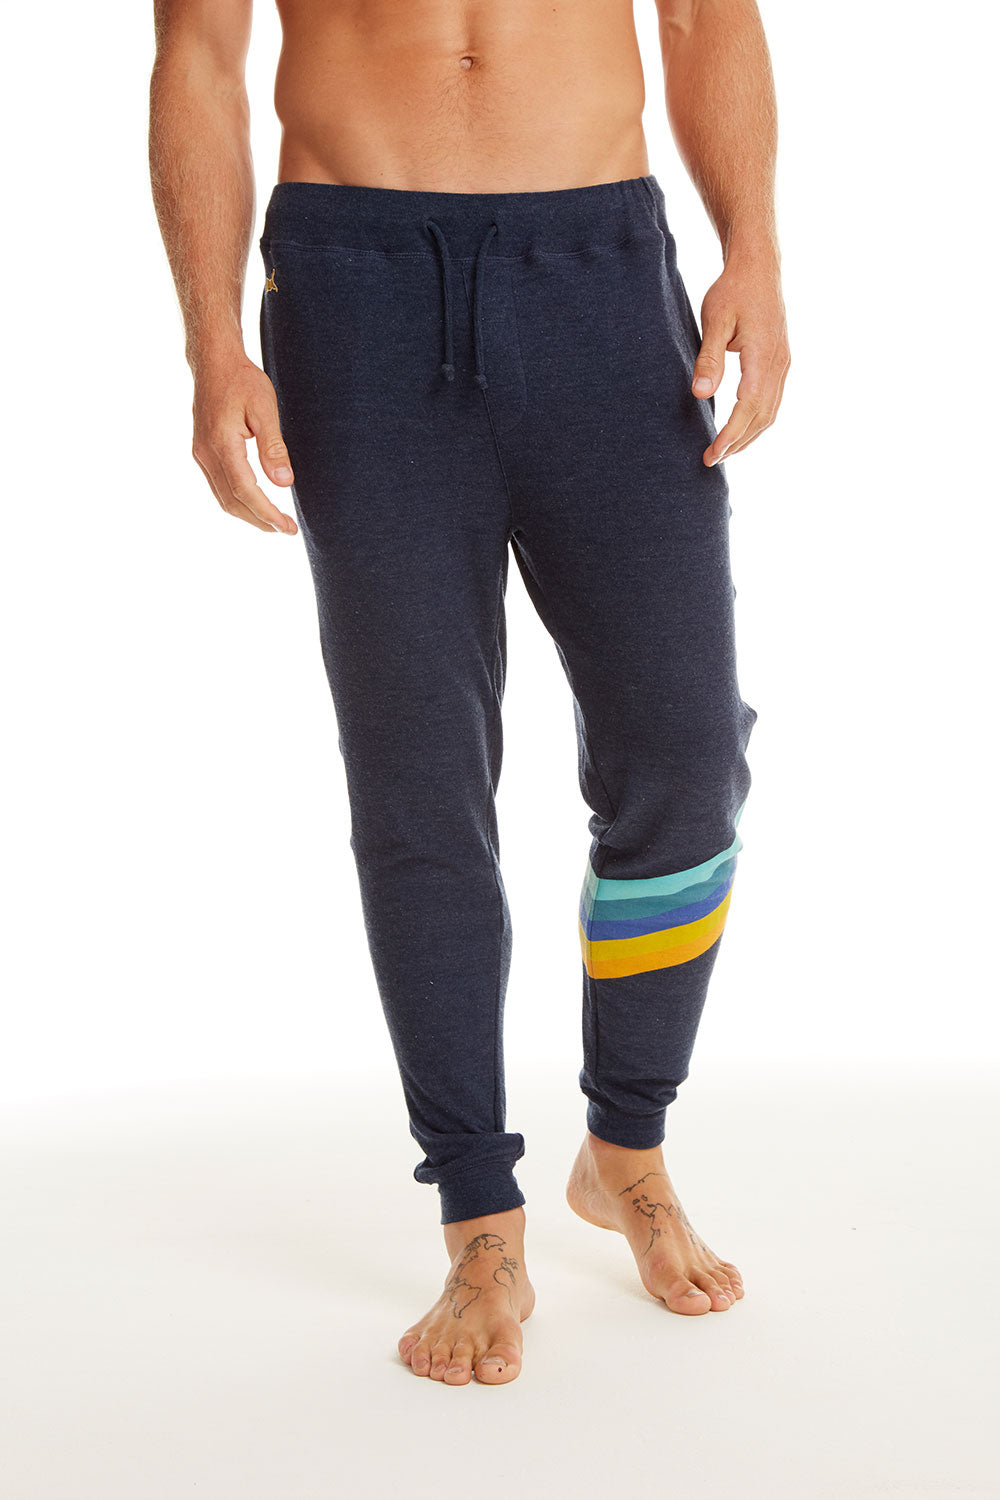 Surf Stripes Pants MENS chaserbrand4.myshopify.com